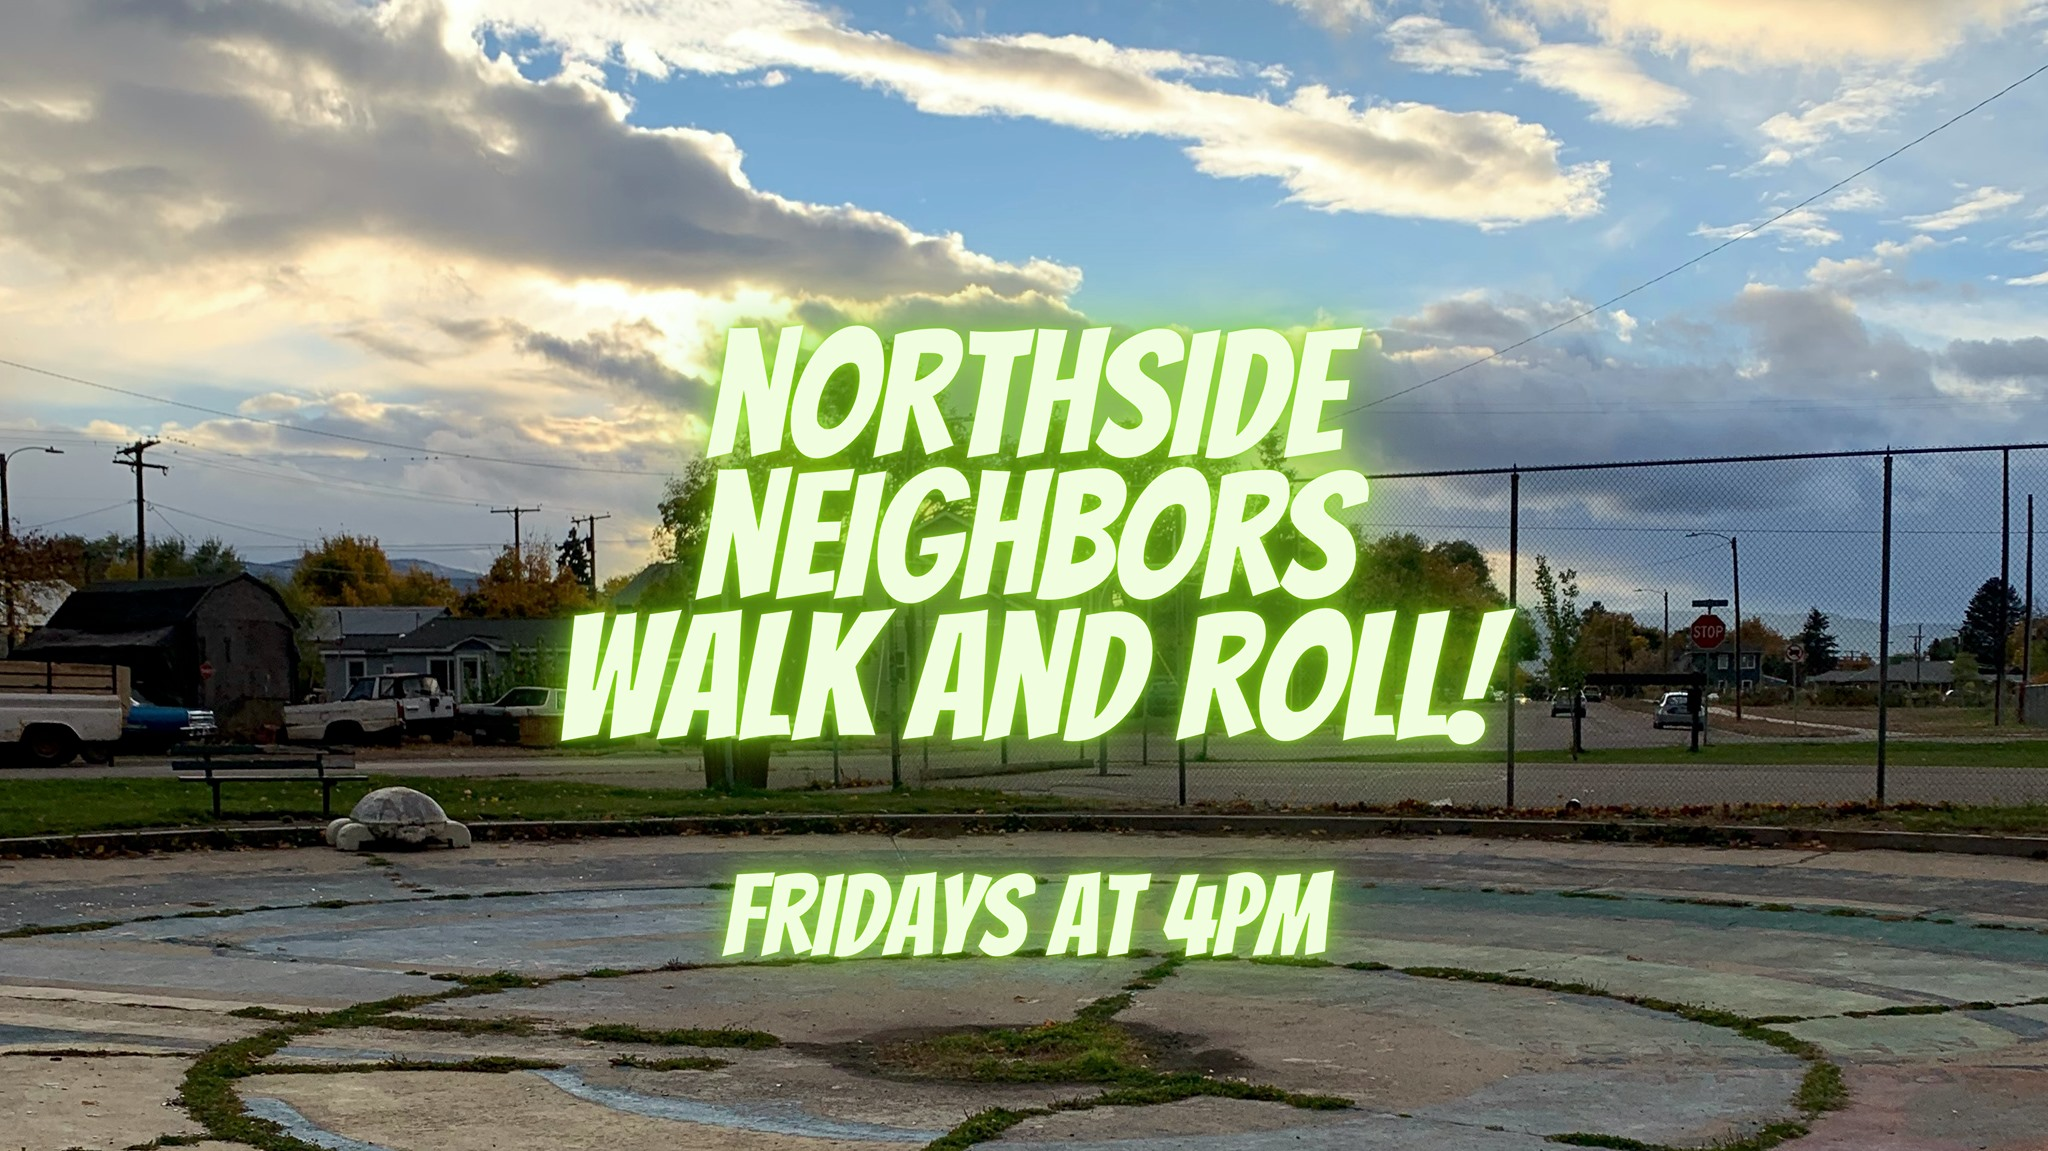 Northside Neighbors Walk and Roll